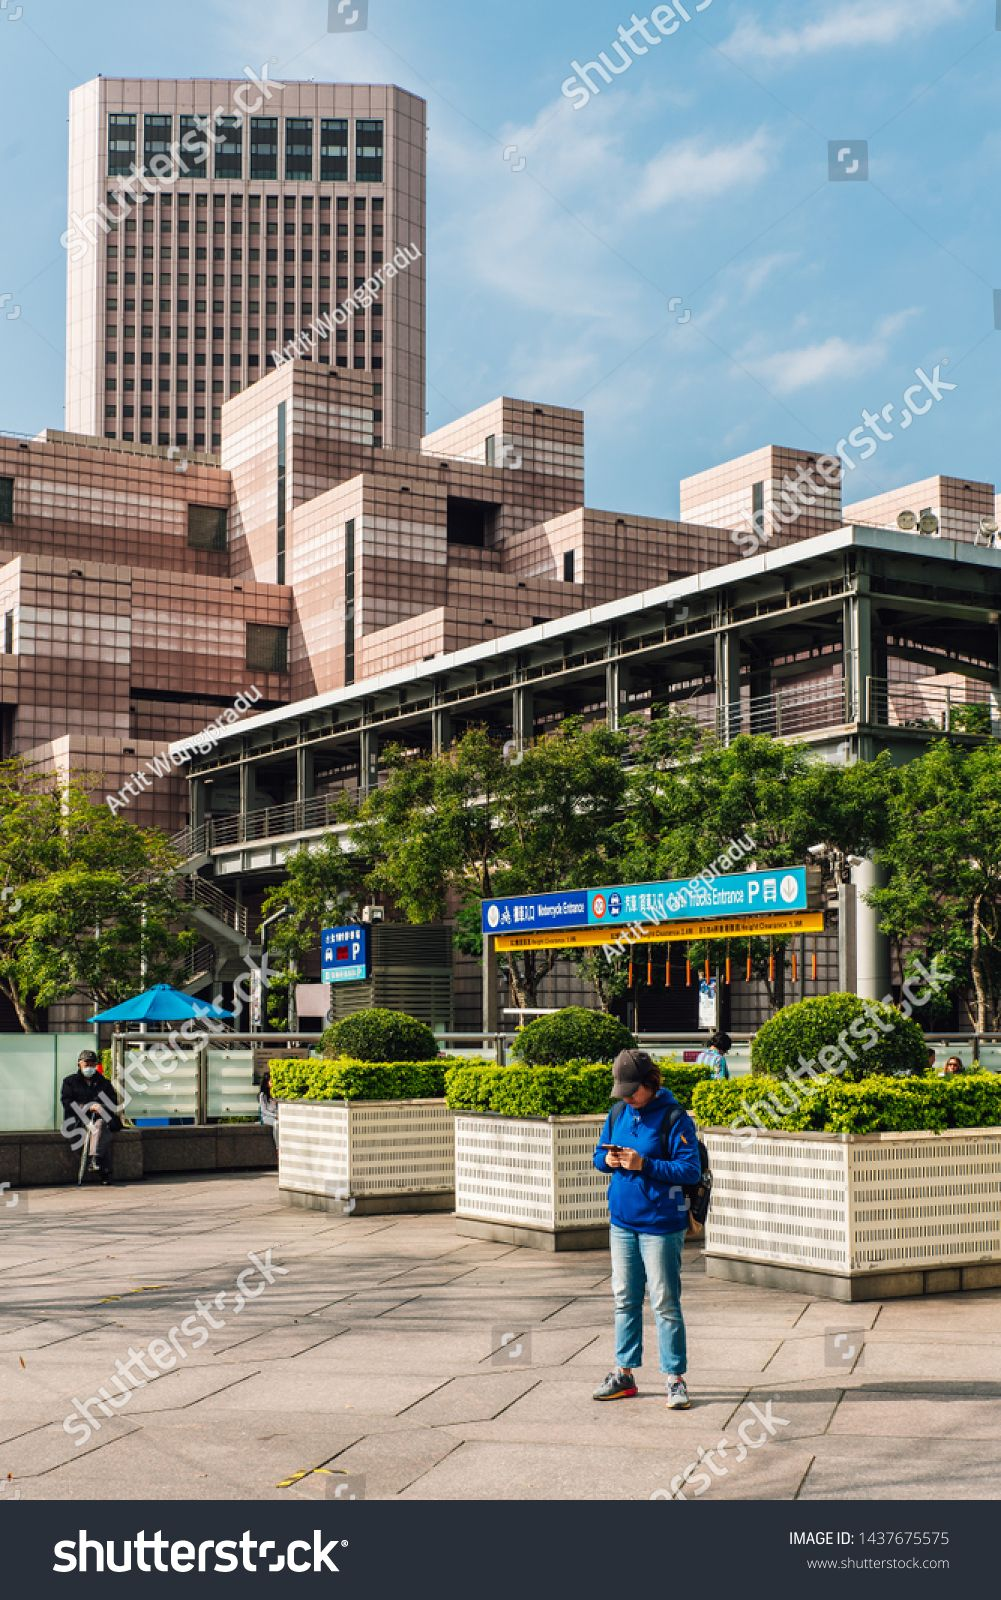 TAIPEI, TAIWAN. DEC 26, 2017: Building of Taipei World Trade Center Post Office. Decorated with white and light red color tiles with tourist standing in foreground. #Sponsored , #ad, #Taipei#Building#World#Center